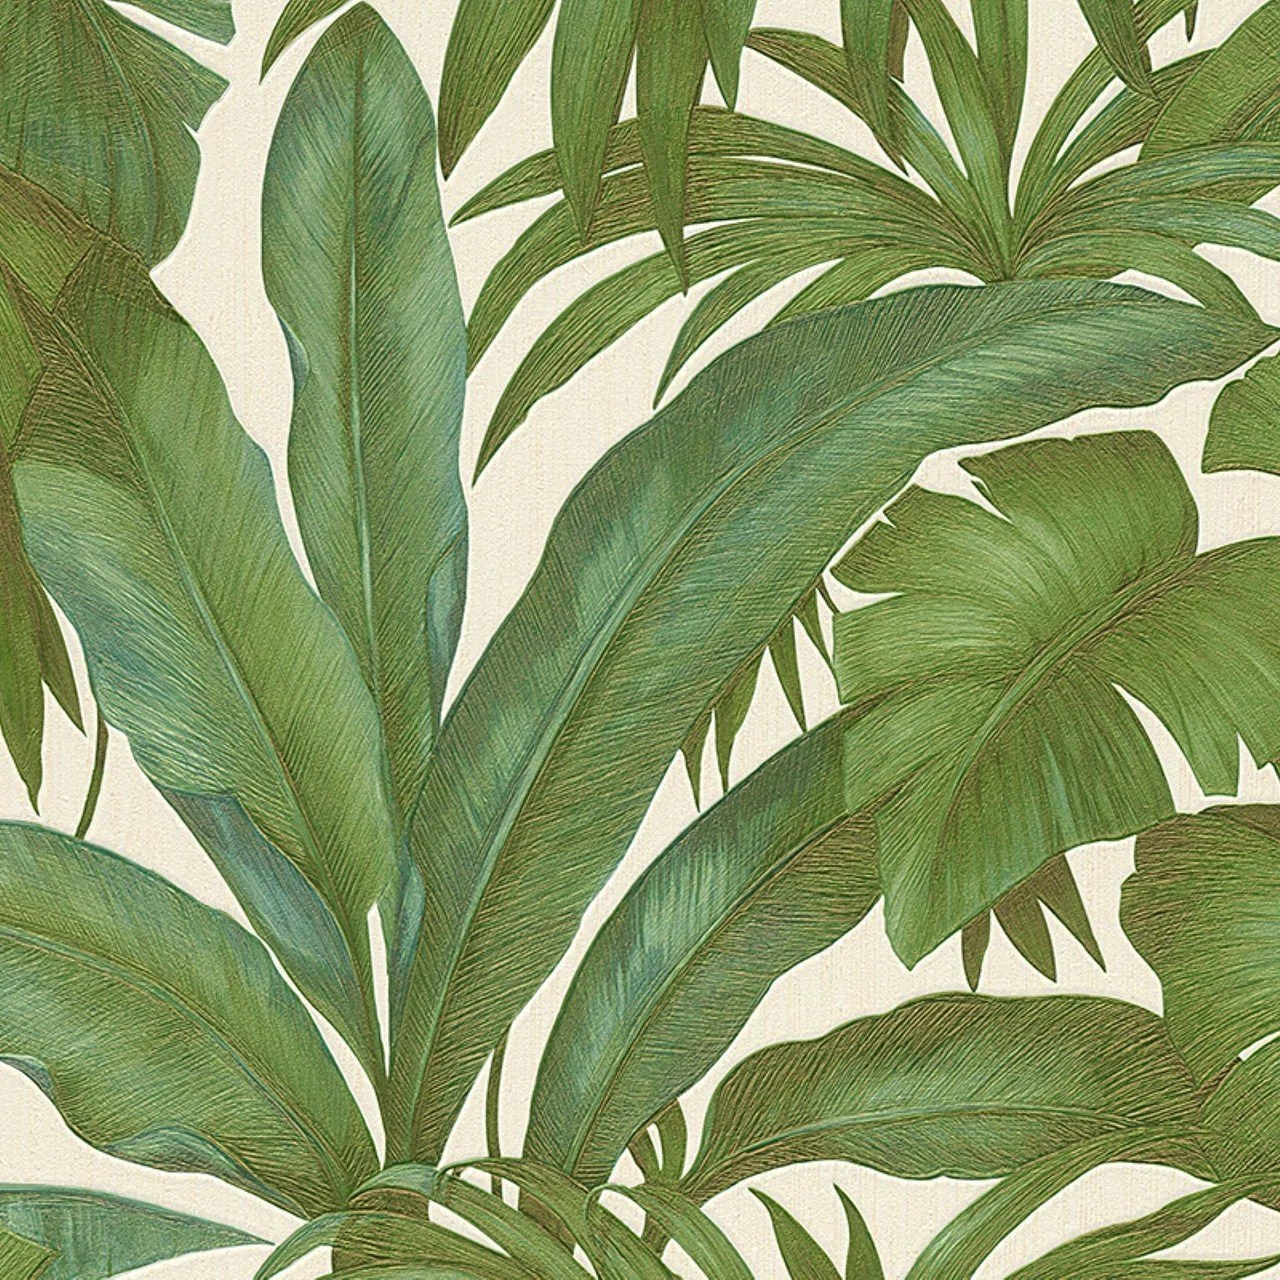 Absorbing A S Creation Wallpapers Versace Green Palm Leaf Wallpaper Versace Green Palm Leaf Wallpaper Palm Leaf Wallpaper Uk Palm Leaf Wallpaper B Q houzz-02 Palm Leaf Wallpaper